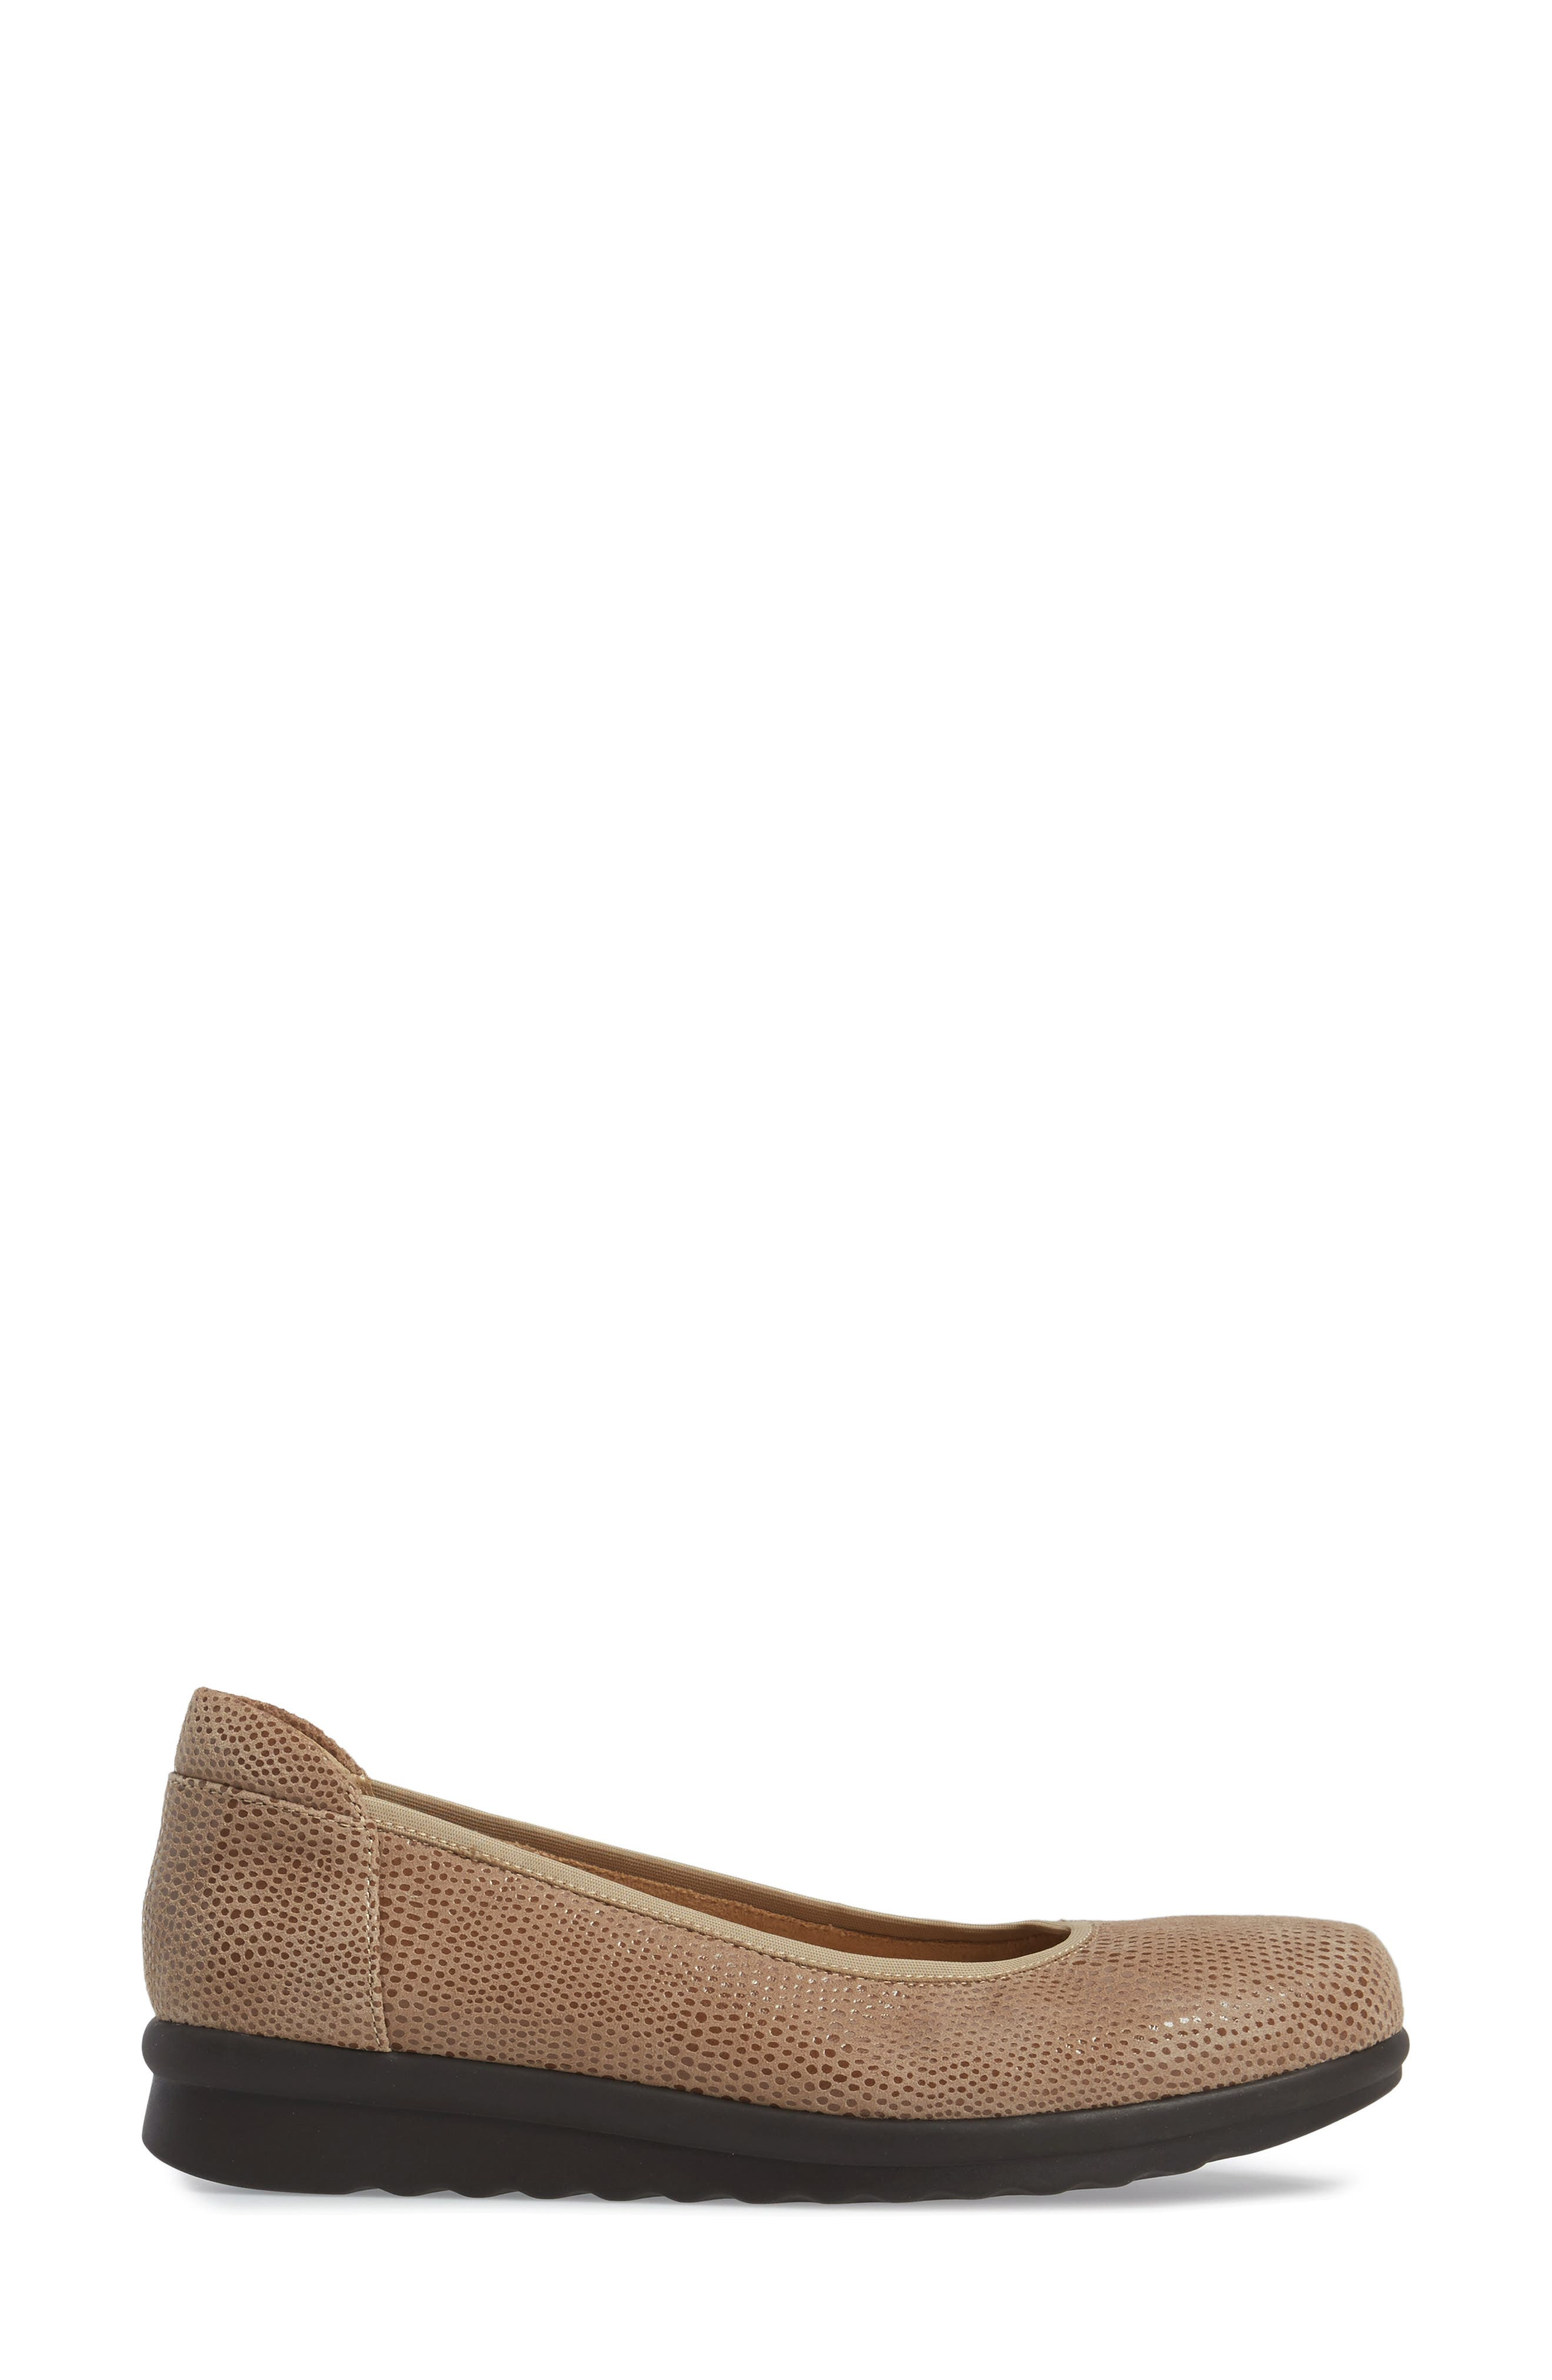 Donia Flat,                             Alternate thumbnail 3, color,                             Taupe Print Fabric